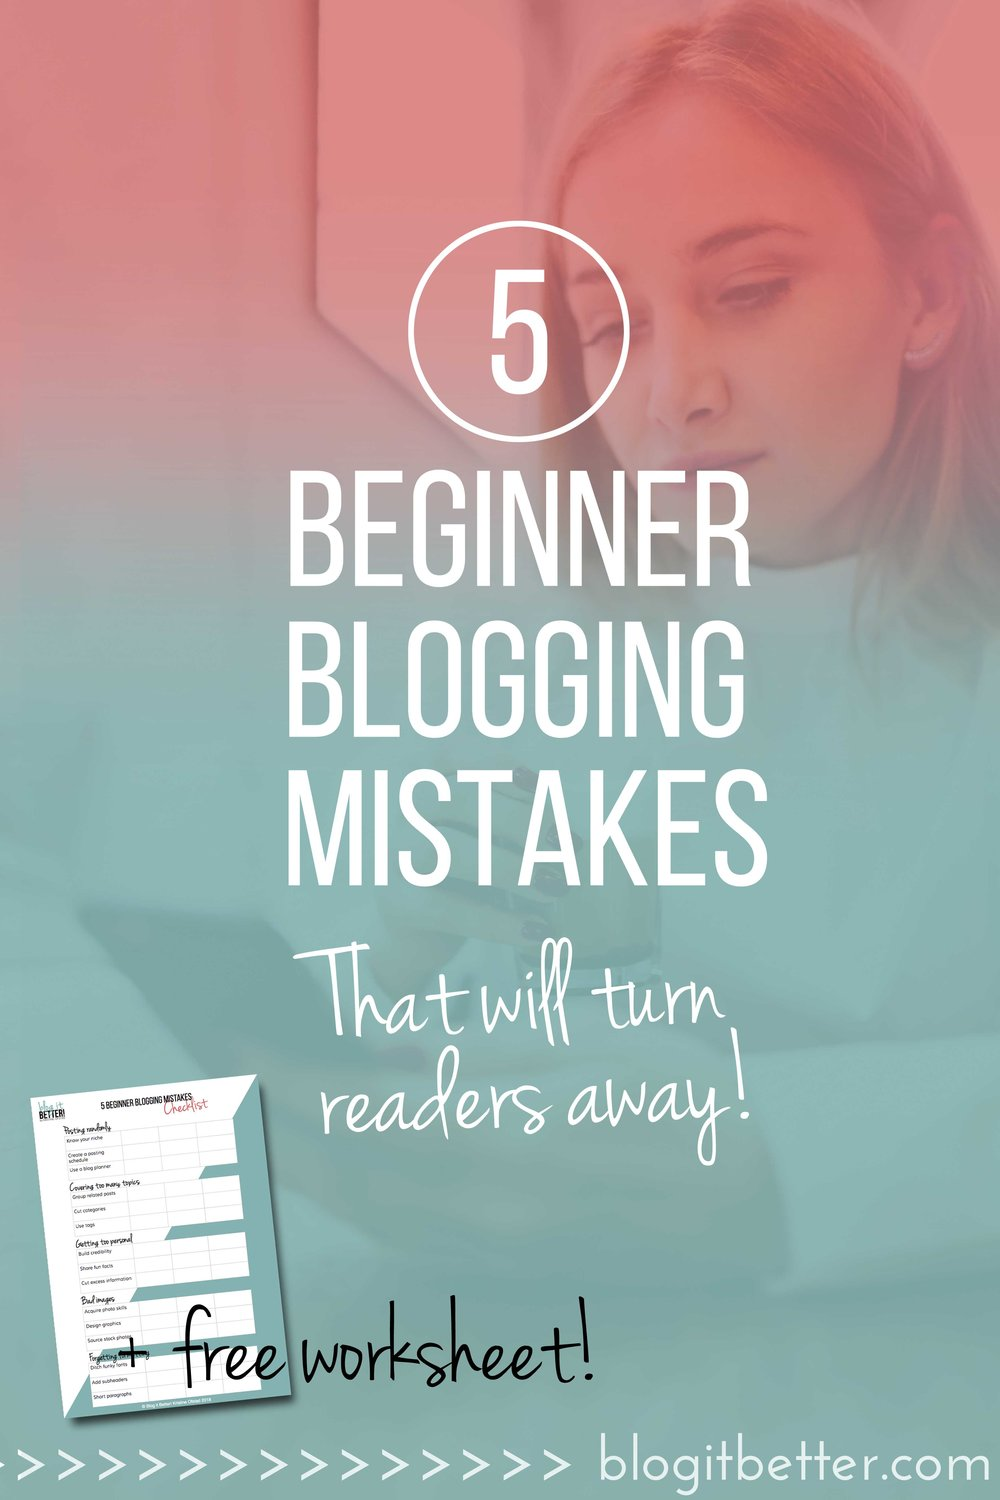 Are You Making These 5 Huge Beginner Blogging Mistakes? + FREE worksheet download! #bloggingmistakes #bloggingtips #blogitbetter #socialmediatips #blog #blogger #bloggingforbeginners #blogideas #bloggingformoney #freedownload